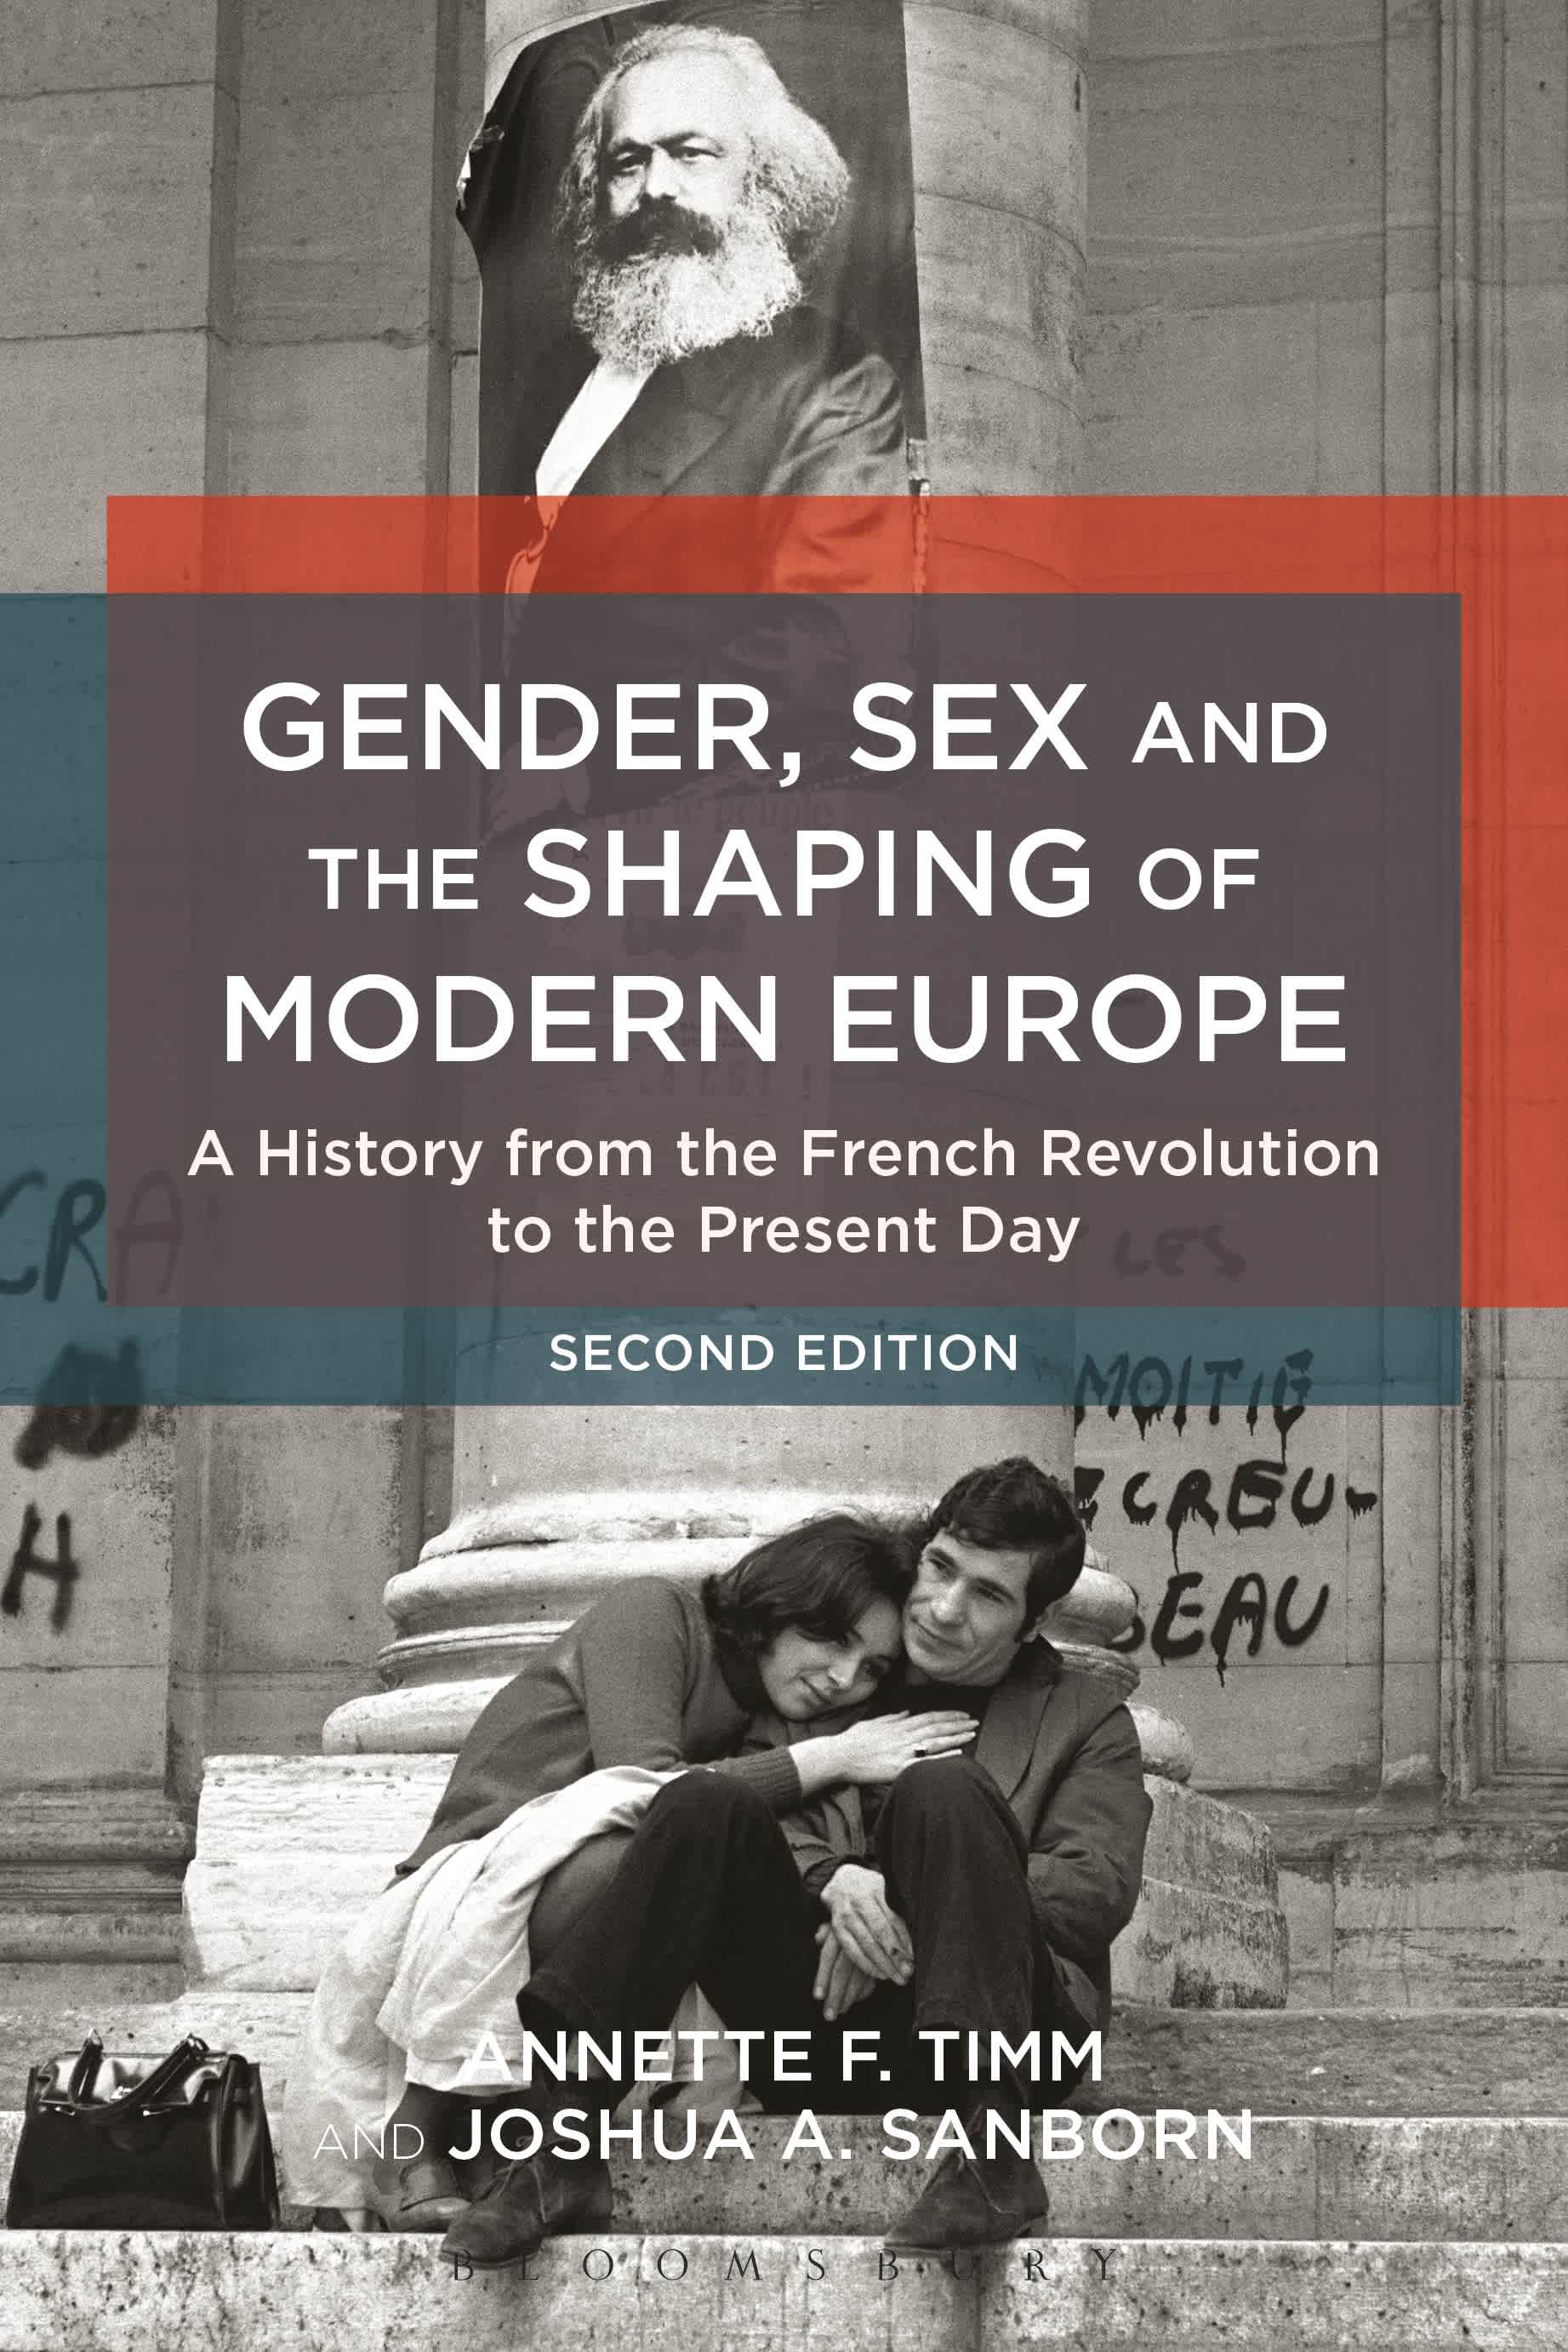 The cover of Gender, Sex and the Shaping of Modern Europe.